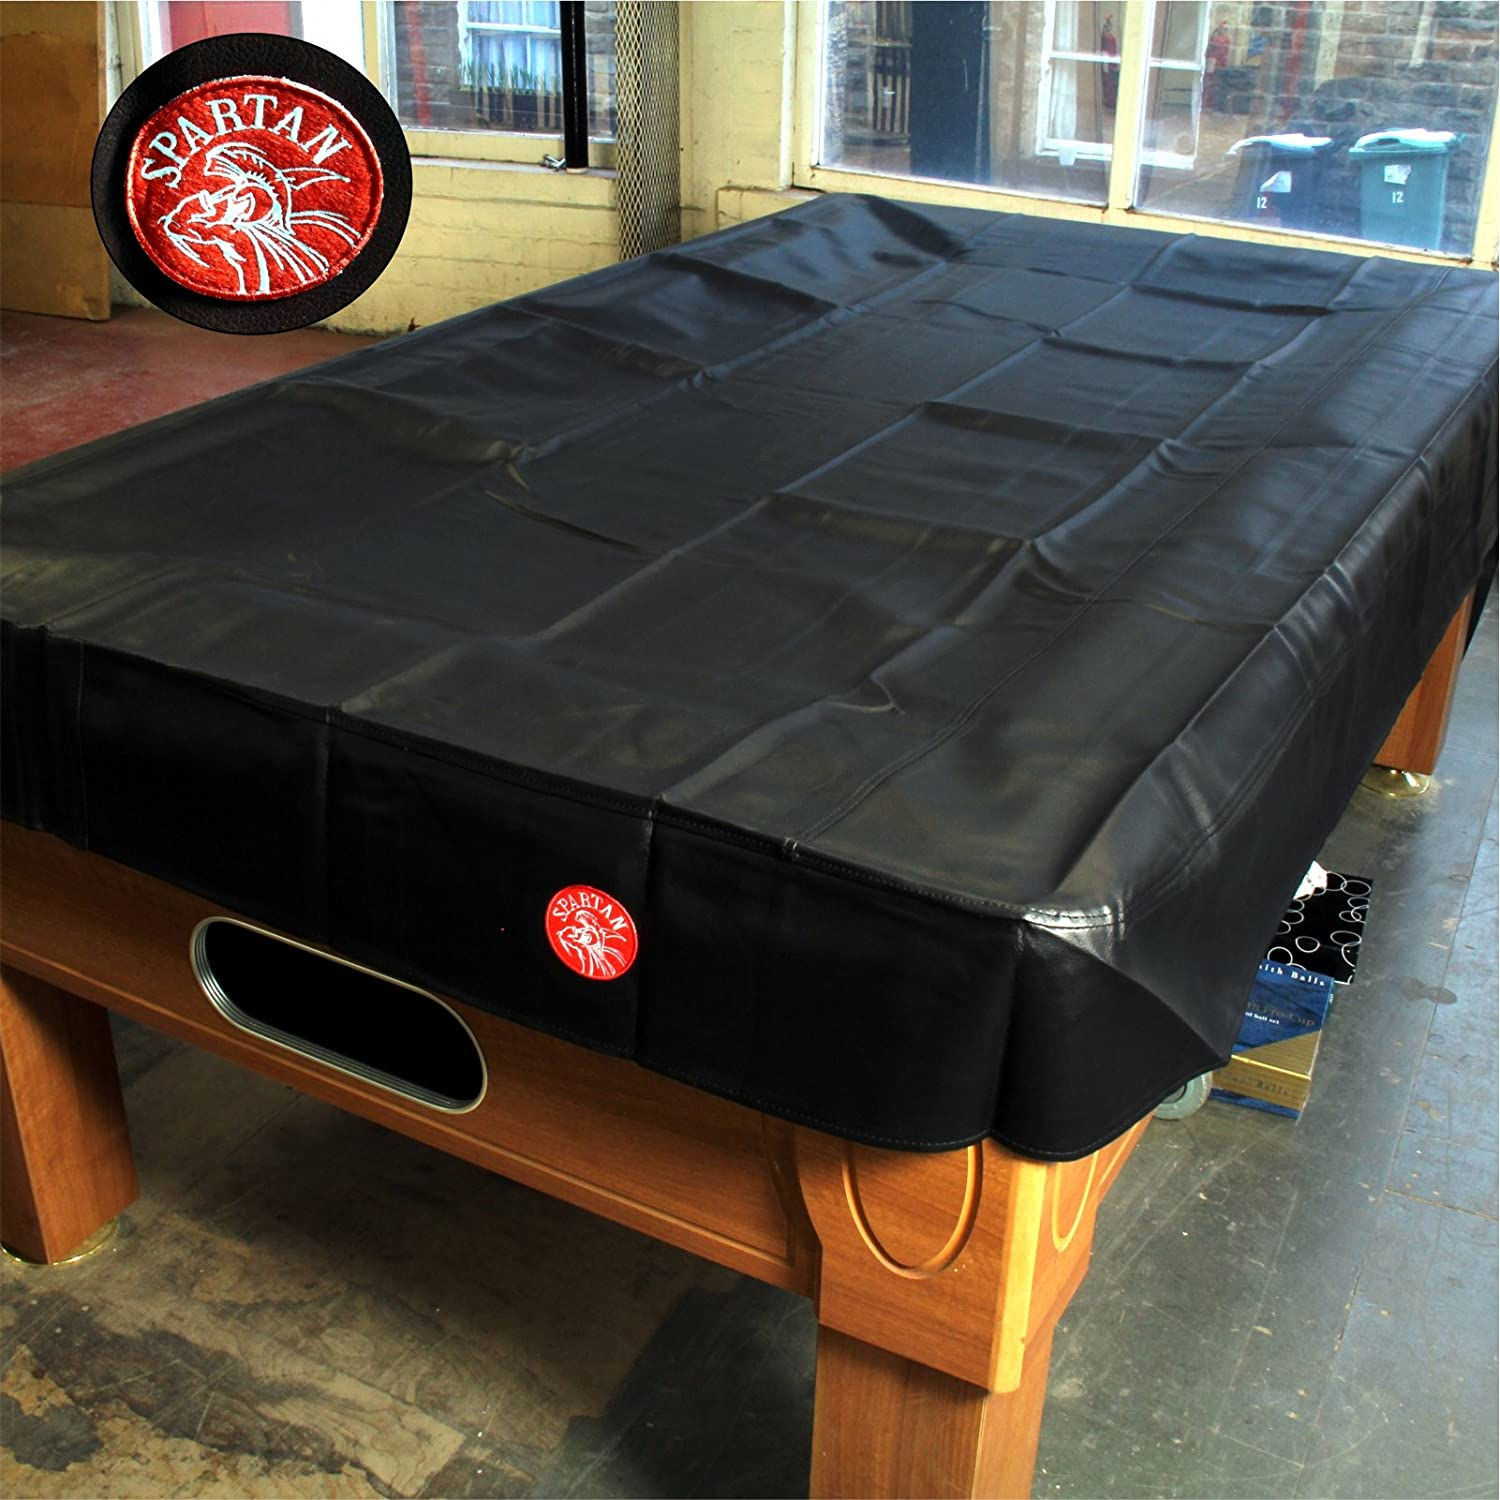 Spartan Heavy Duty wasserabweisend 9 ft American Pool Table Cover – 9 ft Schwarz jonny 8 ball